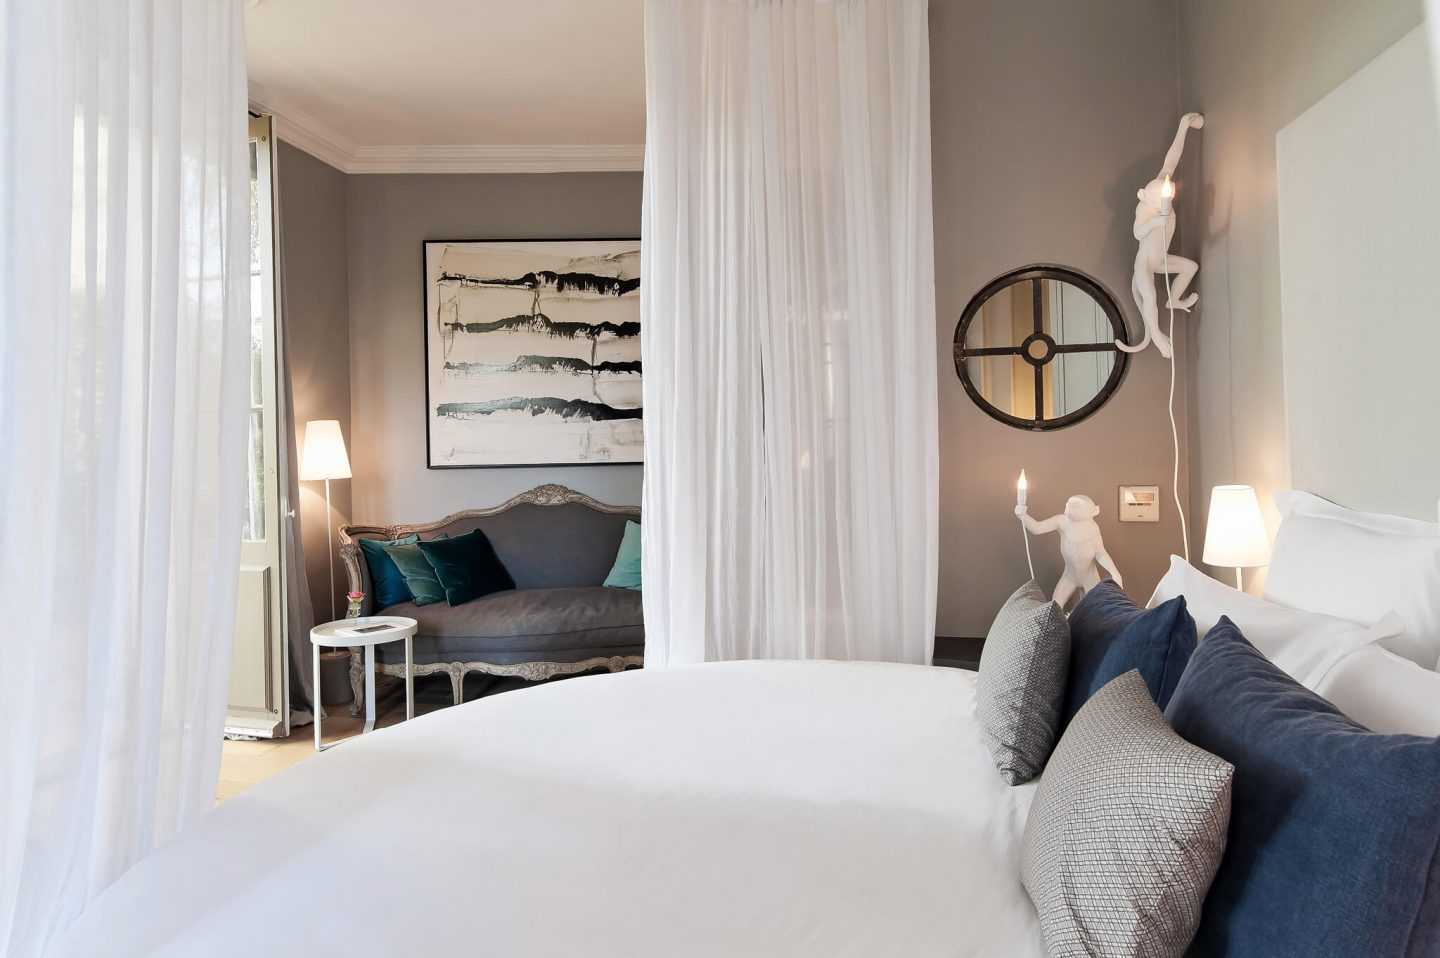 Grey walls, monkey art, and billowy white sheer curtains decorate the suite's bedroom. Serene French Country Style interior design inspiration. The Serenity Suite at Avignon Hôtel Particulier. Luxurious and timeless restored 19th century French chateau in the South of France. Provencal romance, traditional architecture, modern French design, unique art, and European antiques. Photo: Haven In.